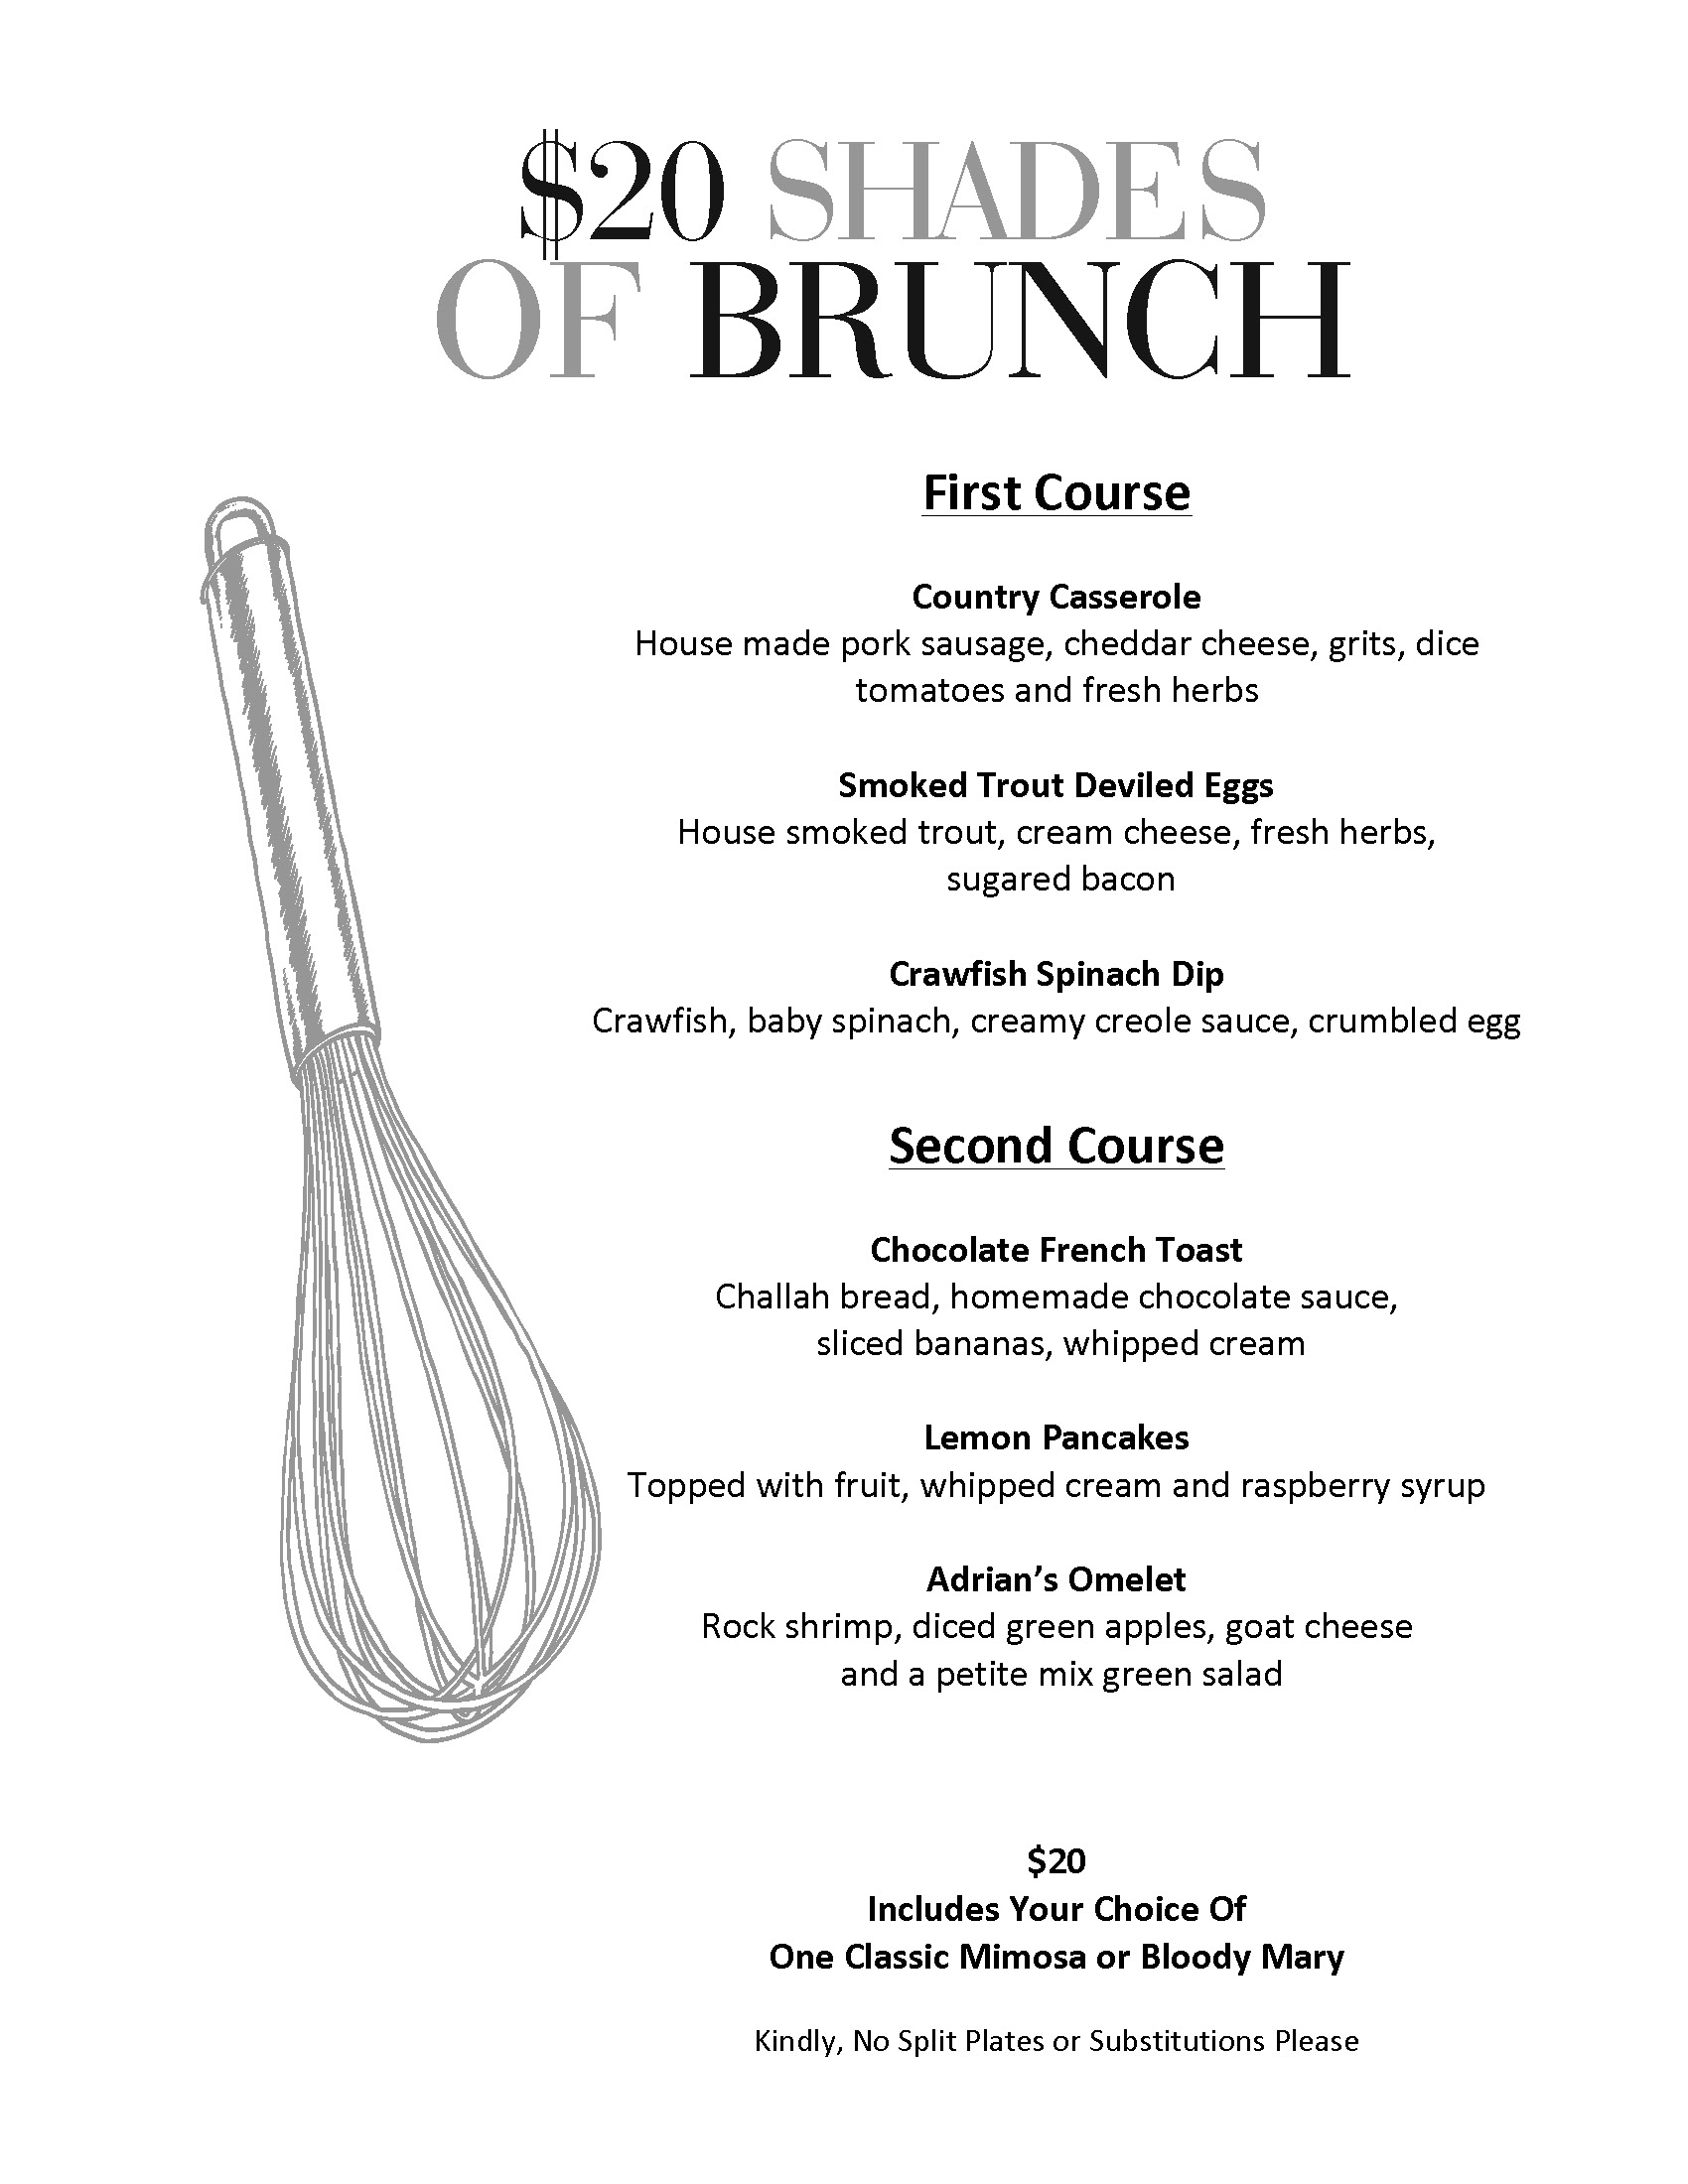 July $20 Shades of Brunch Menu